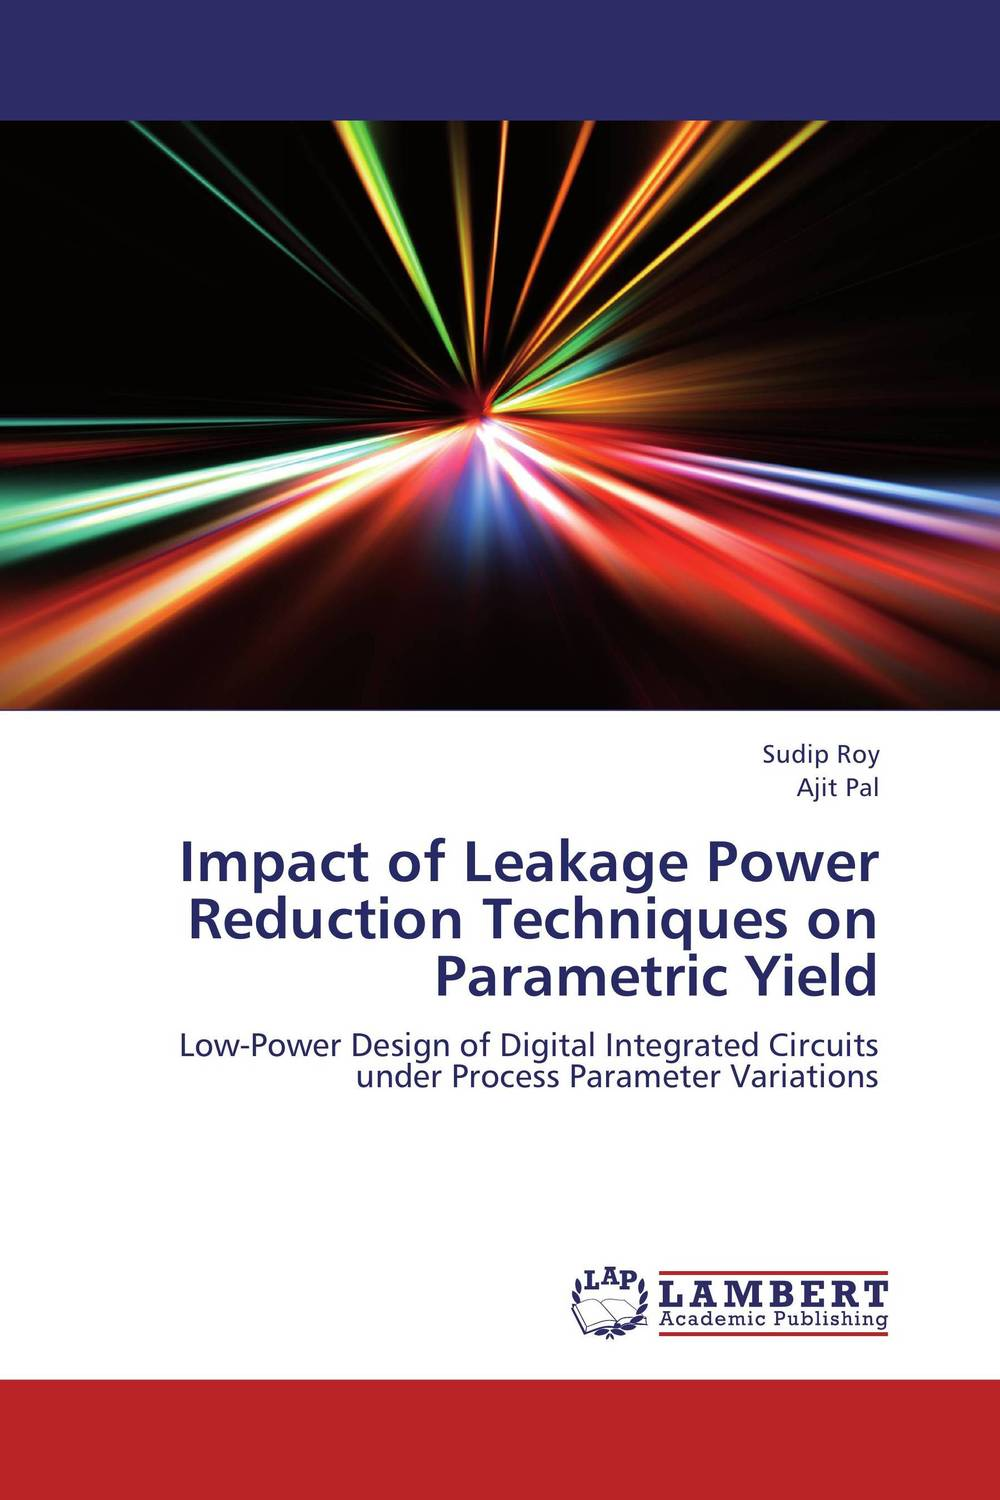 Impact of Leakage Power Reduction Techniques on Parametric Yield андрей днепровский безбашенный a dnepr дар завораживать небеса новеллы